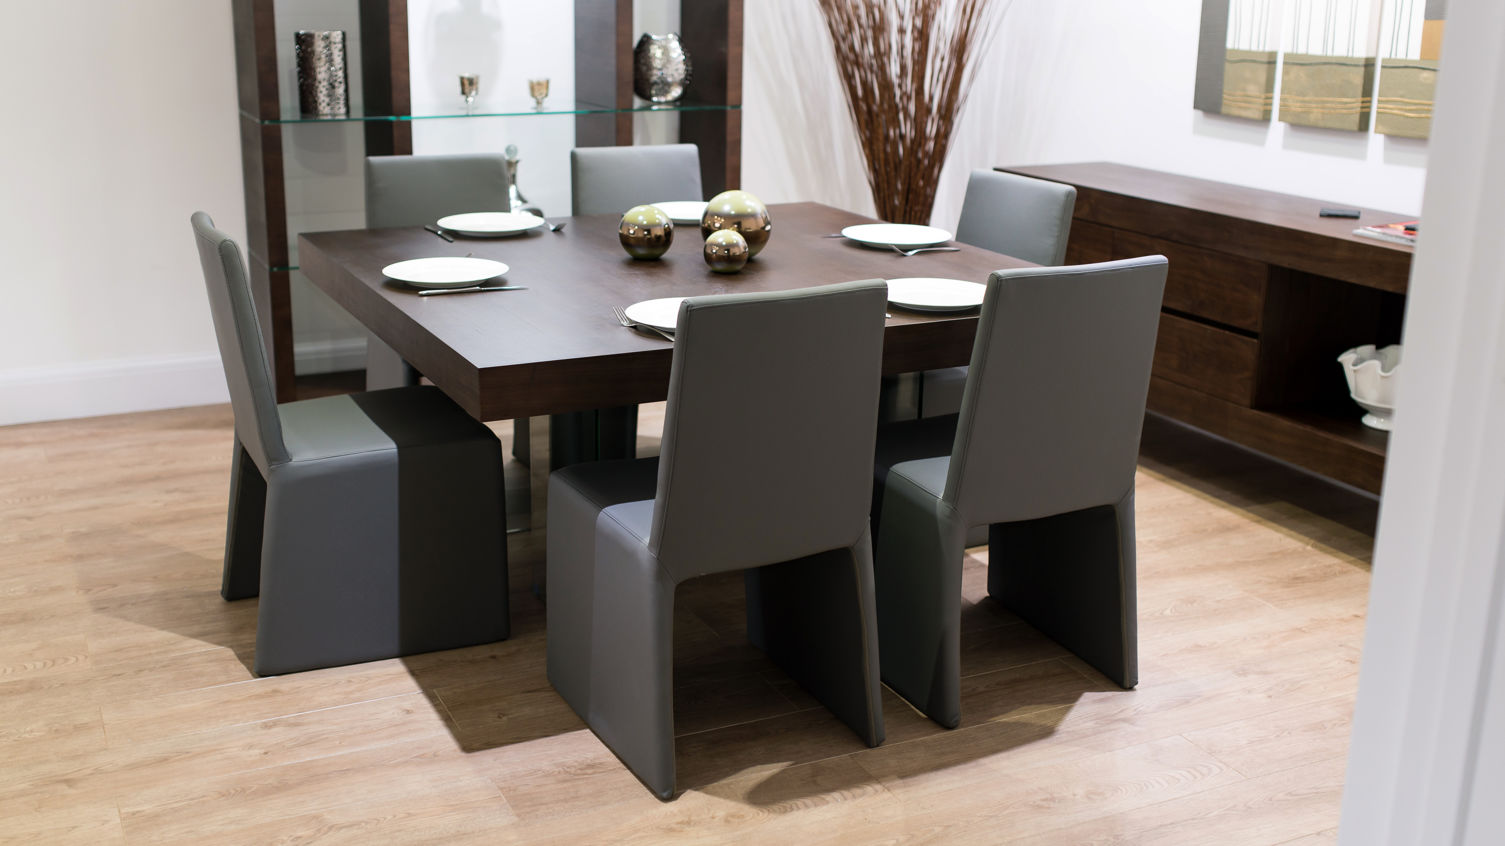 8 Seater Dining Table Designs